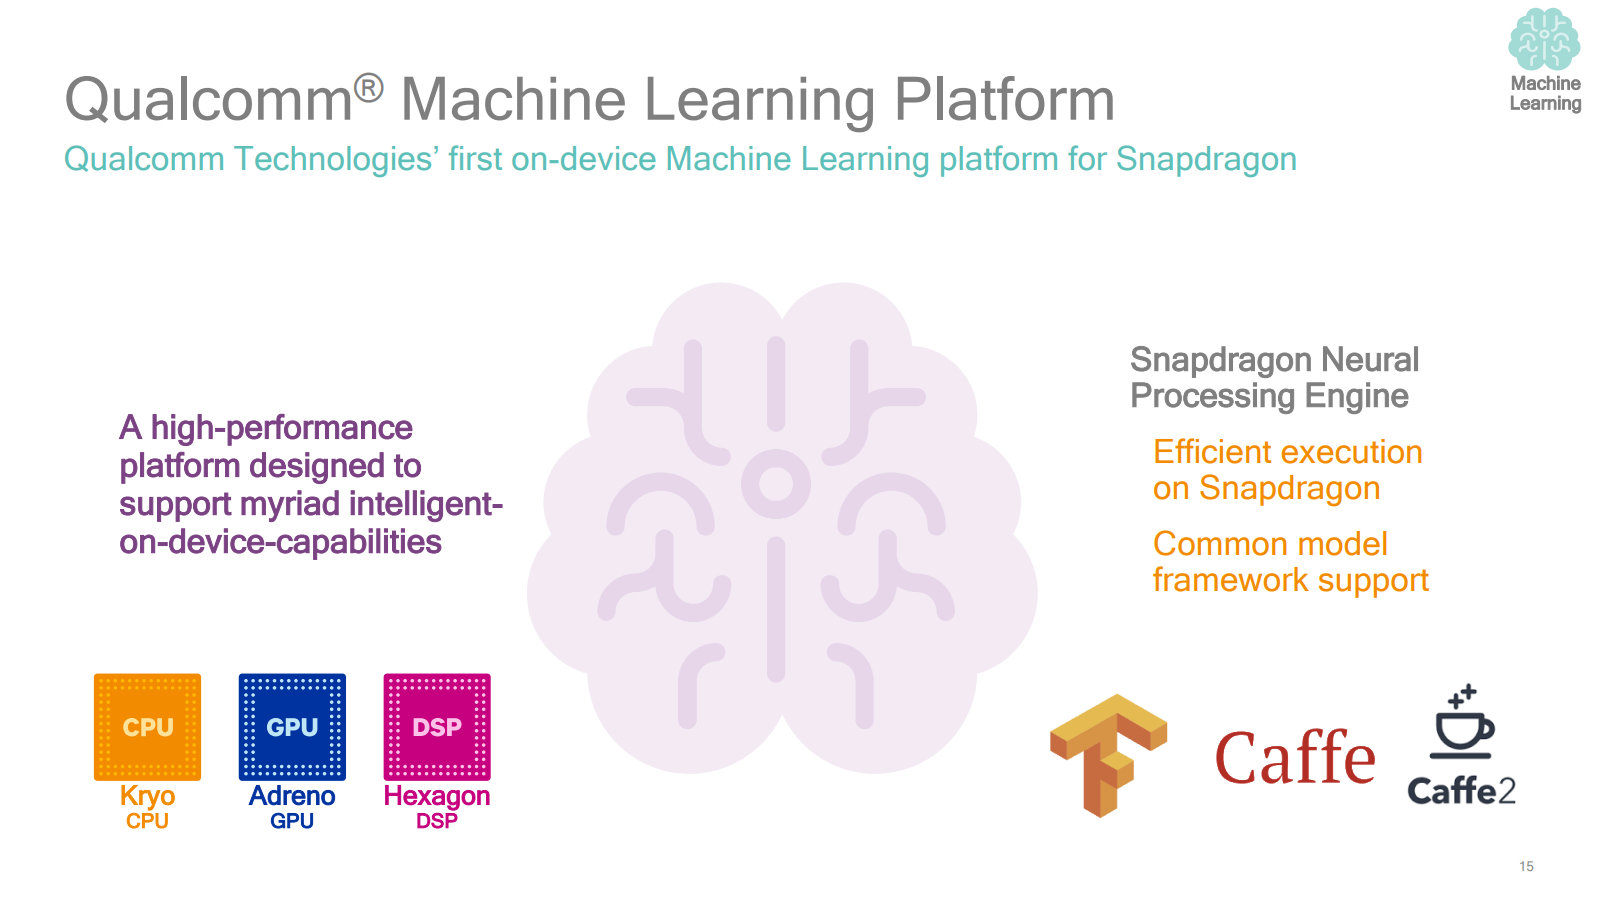 In das SoC integrierte Machine-Learning-Plattform